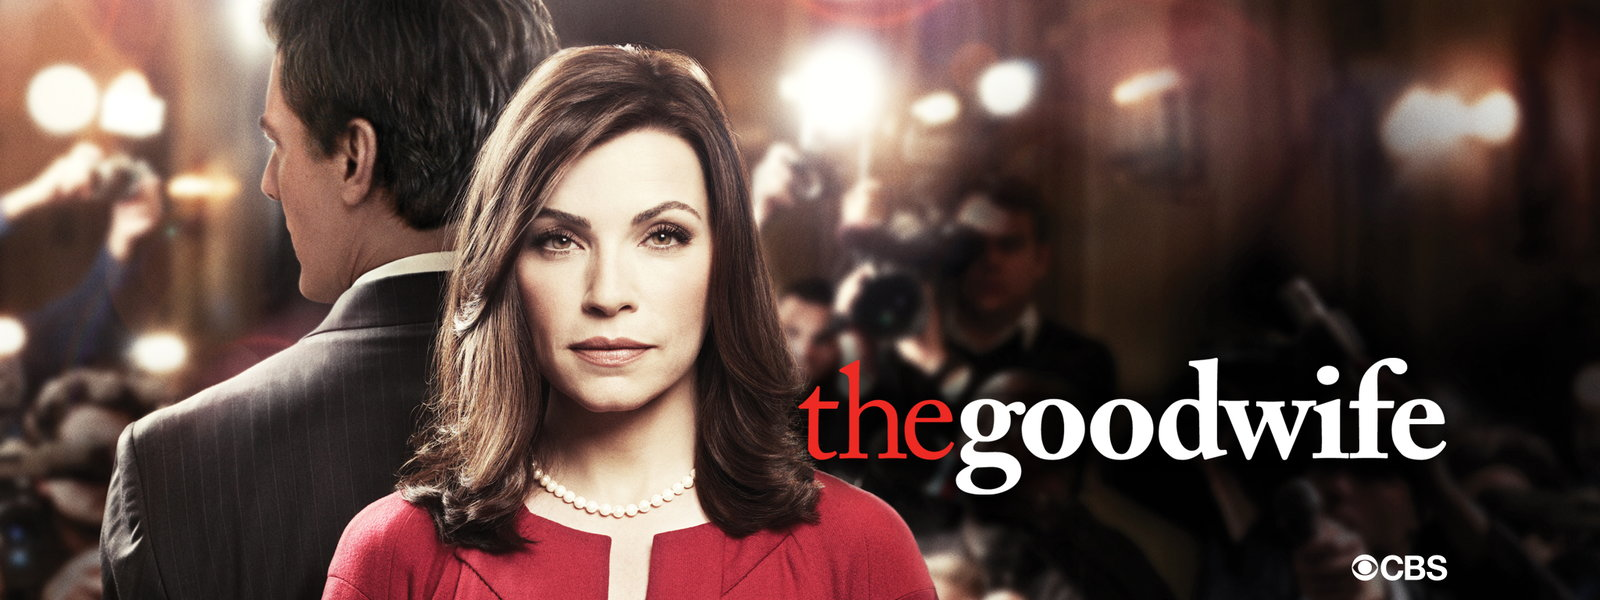 The Good Wife 15094